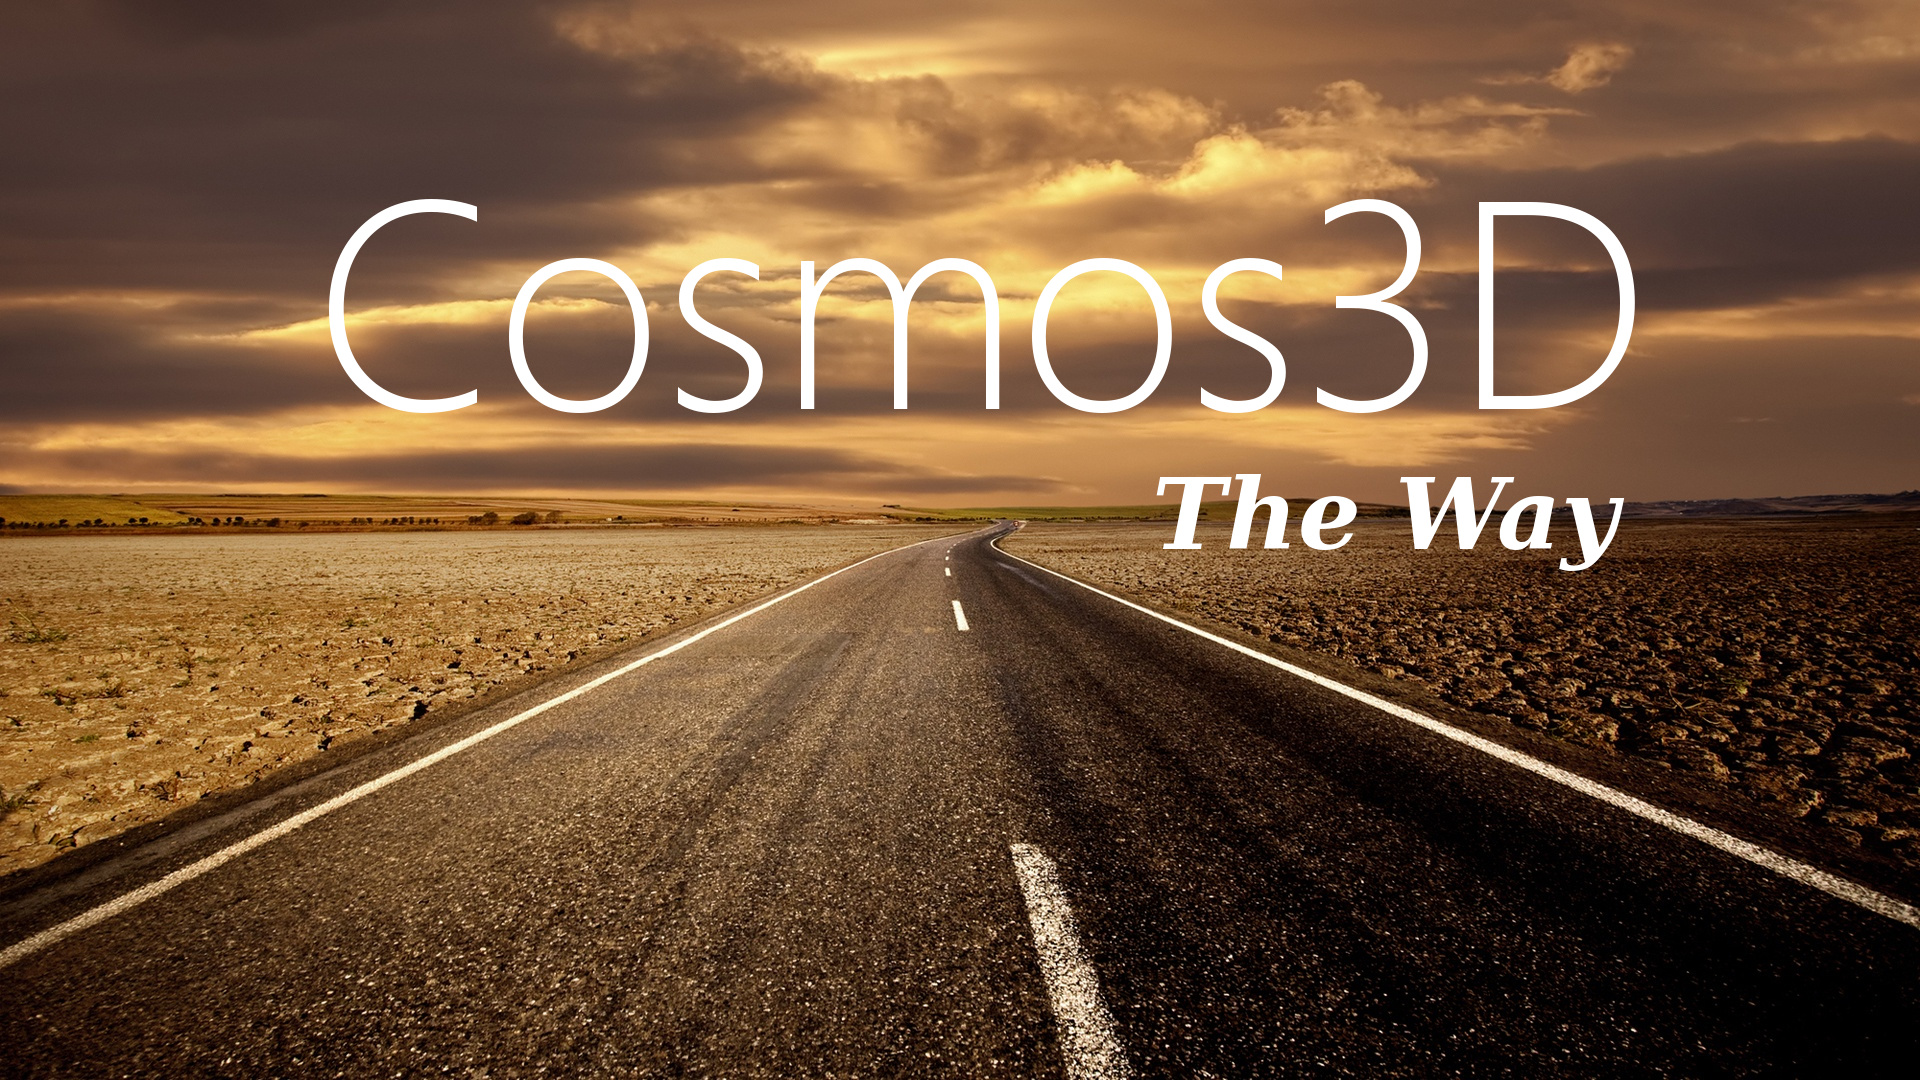 Cosmos3D - The Way